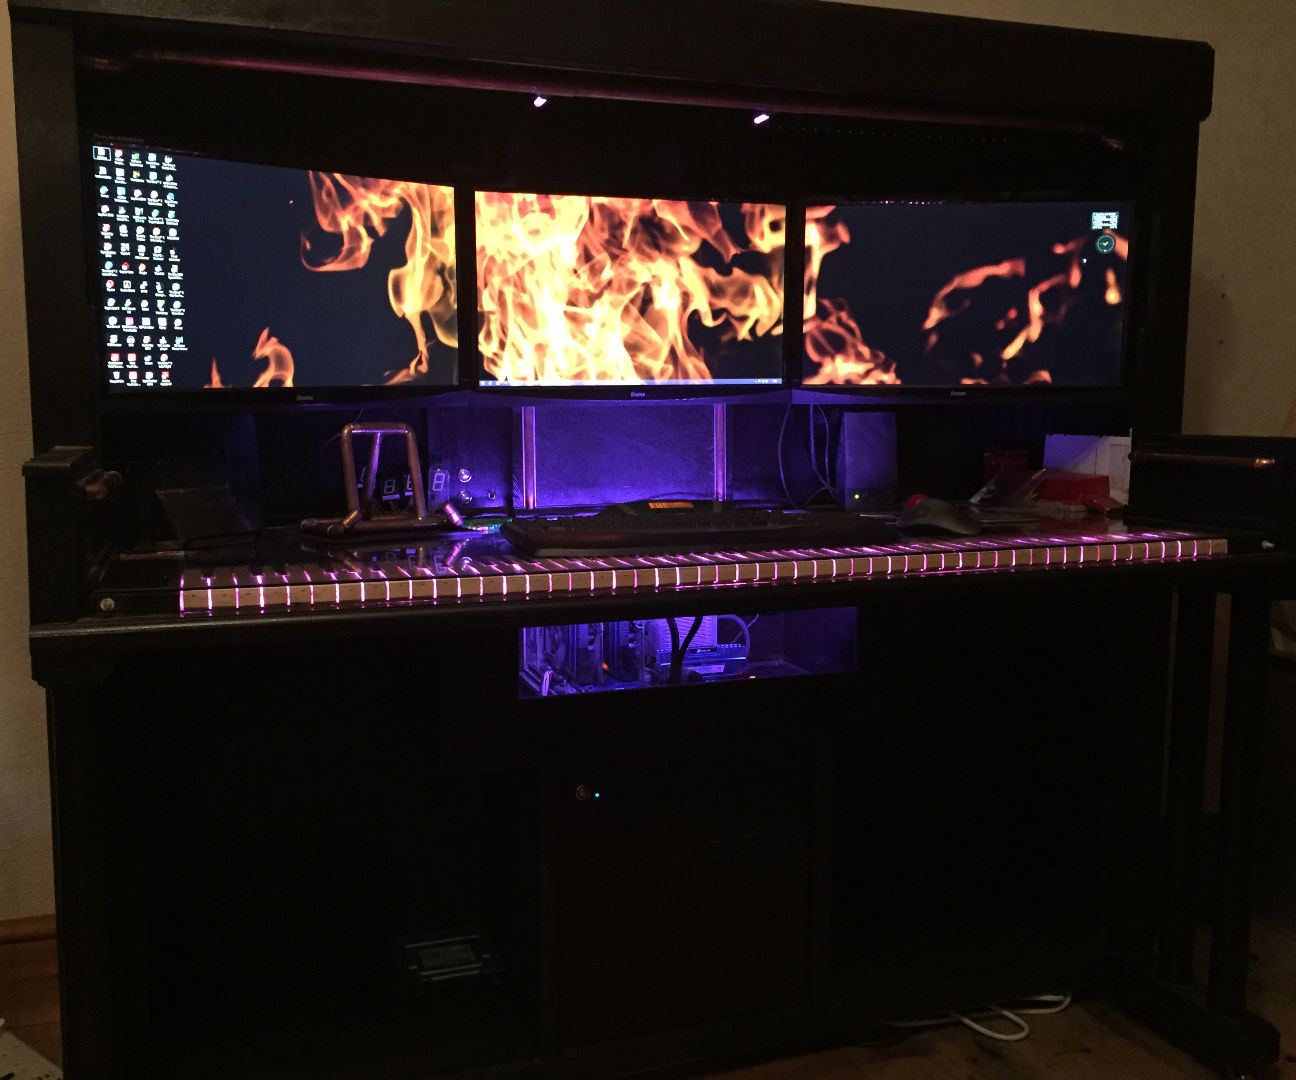 Computer Desk ( That Thinks Its A Piano)